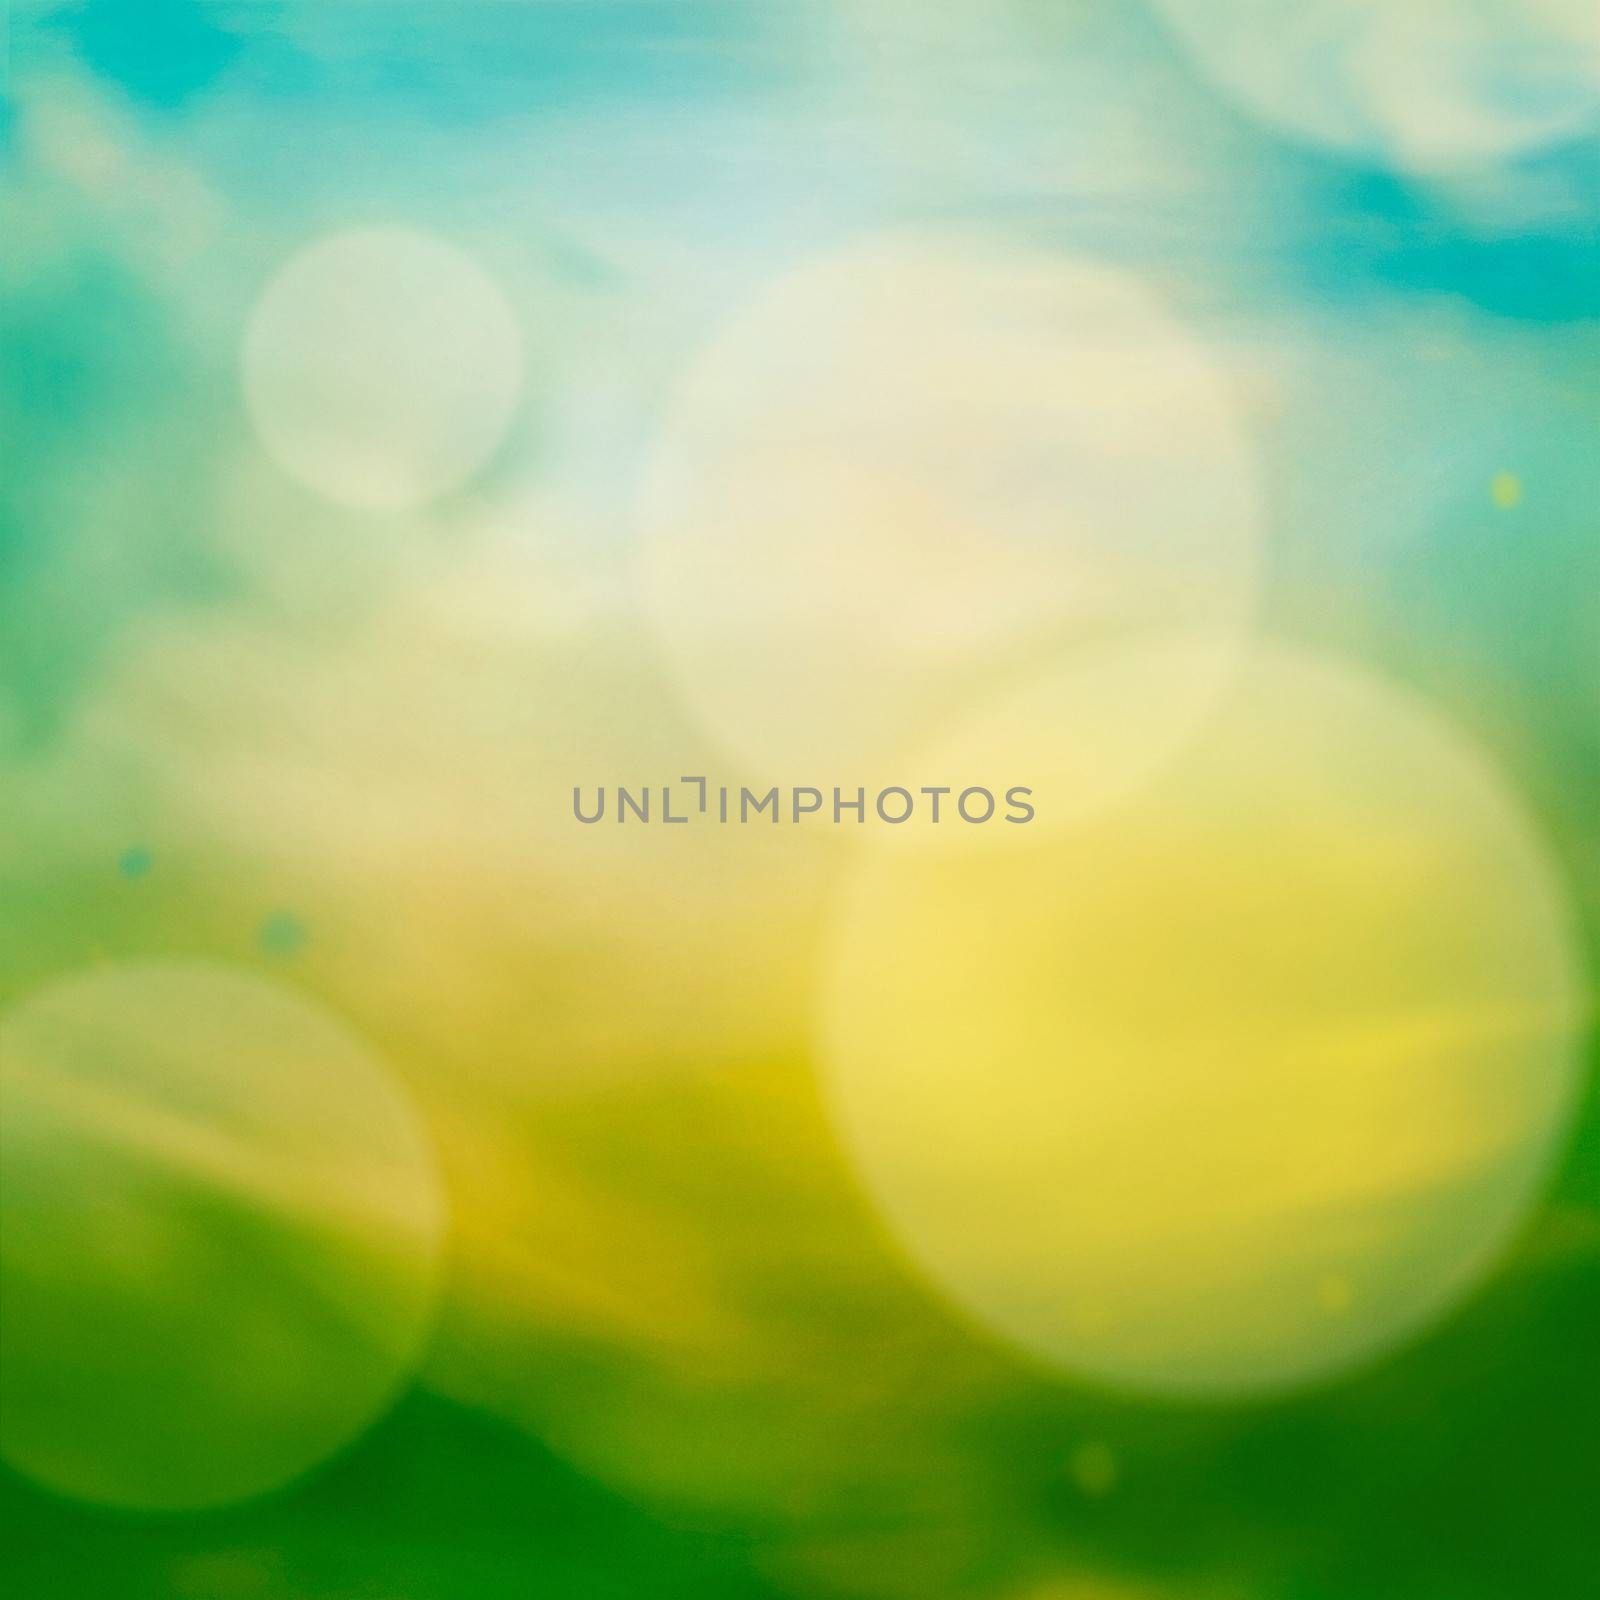 Spring or summer abstract nature background with meadow and blue sky in the back